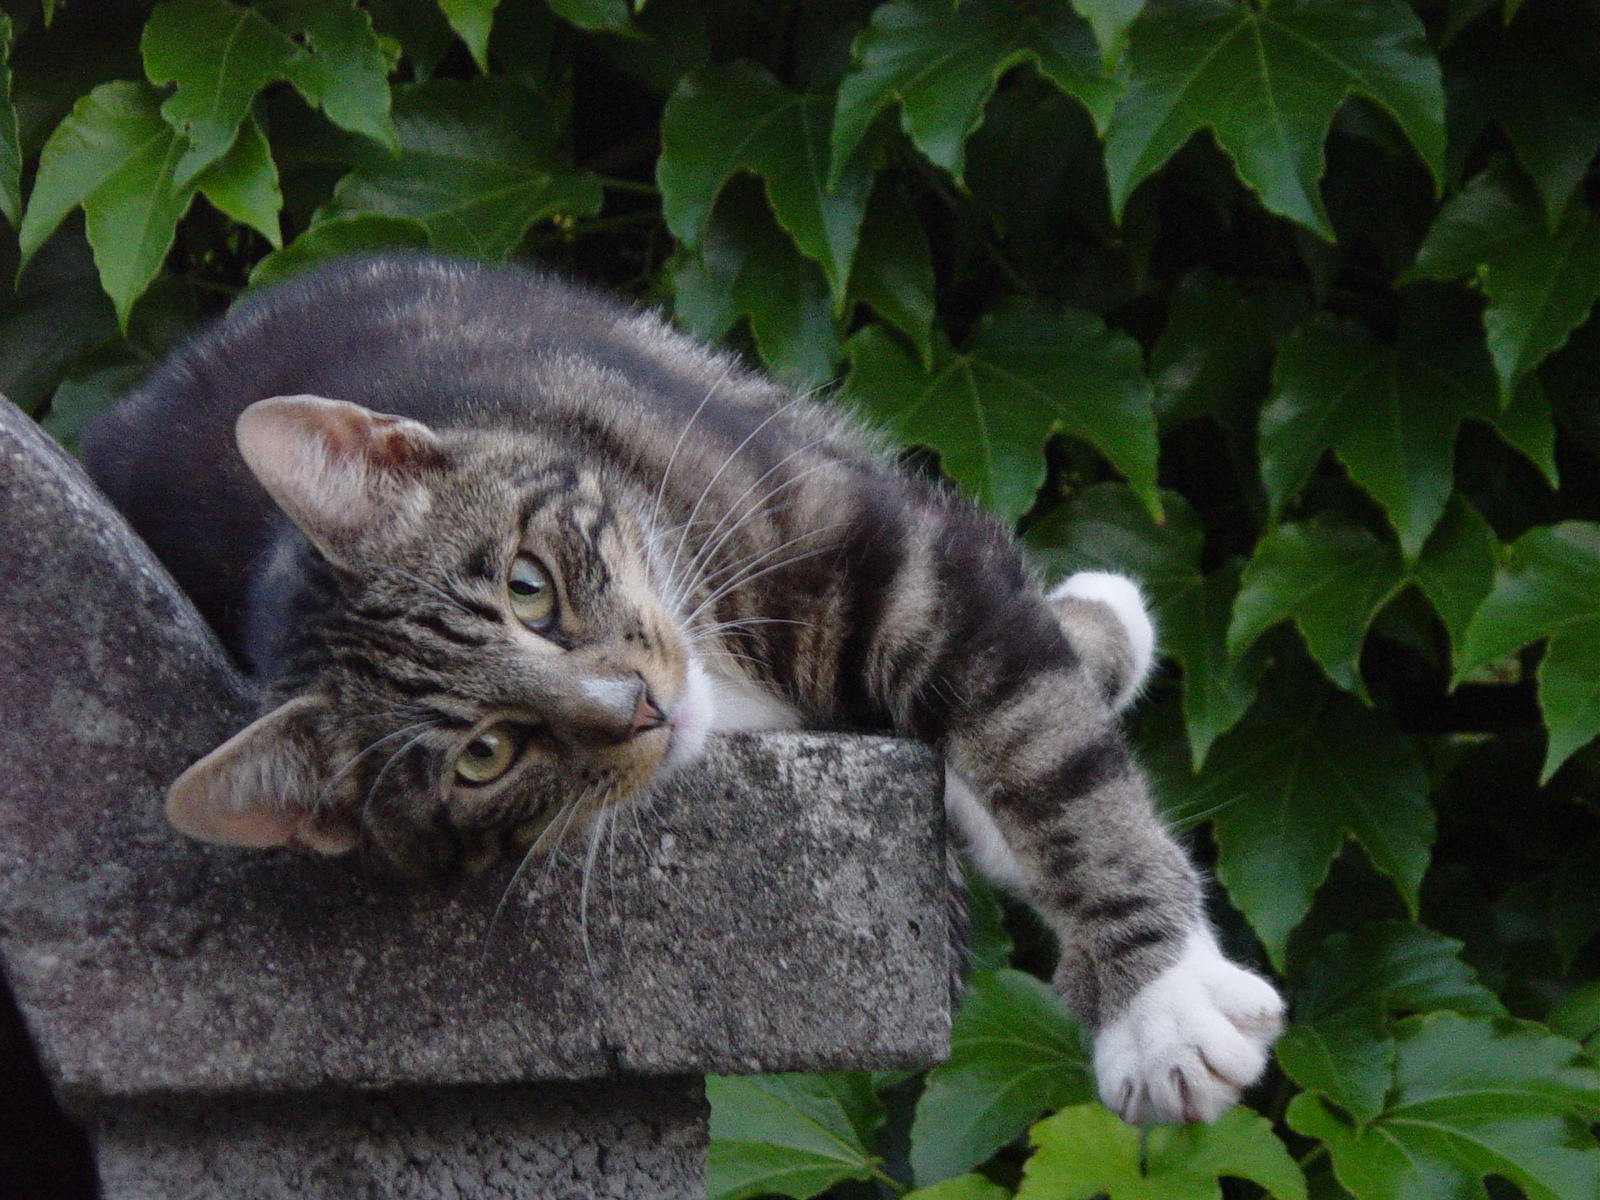 Our tom cat in the garden